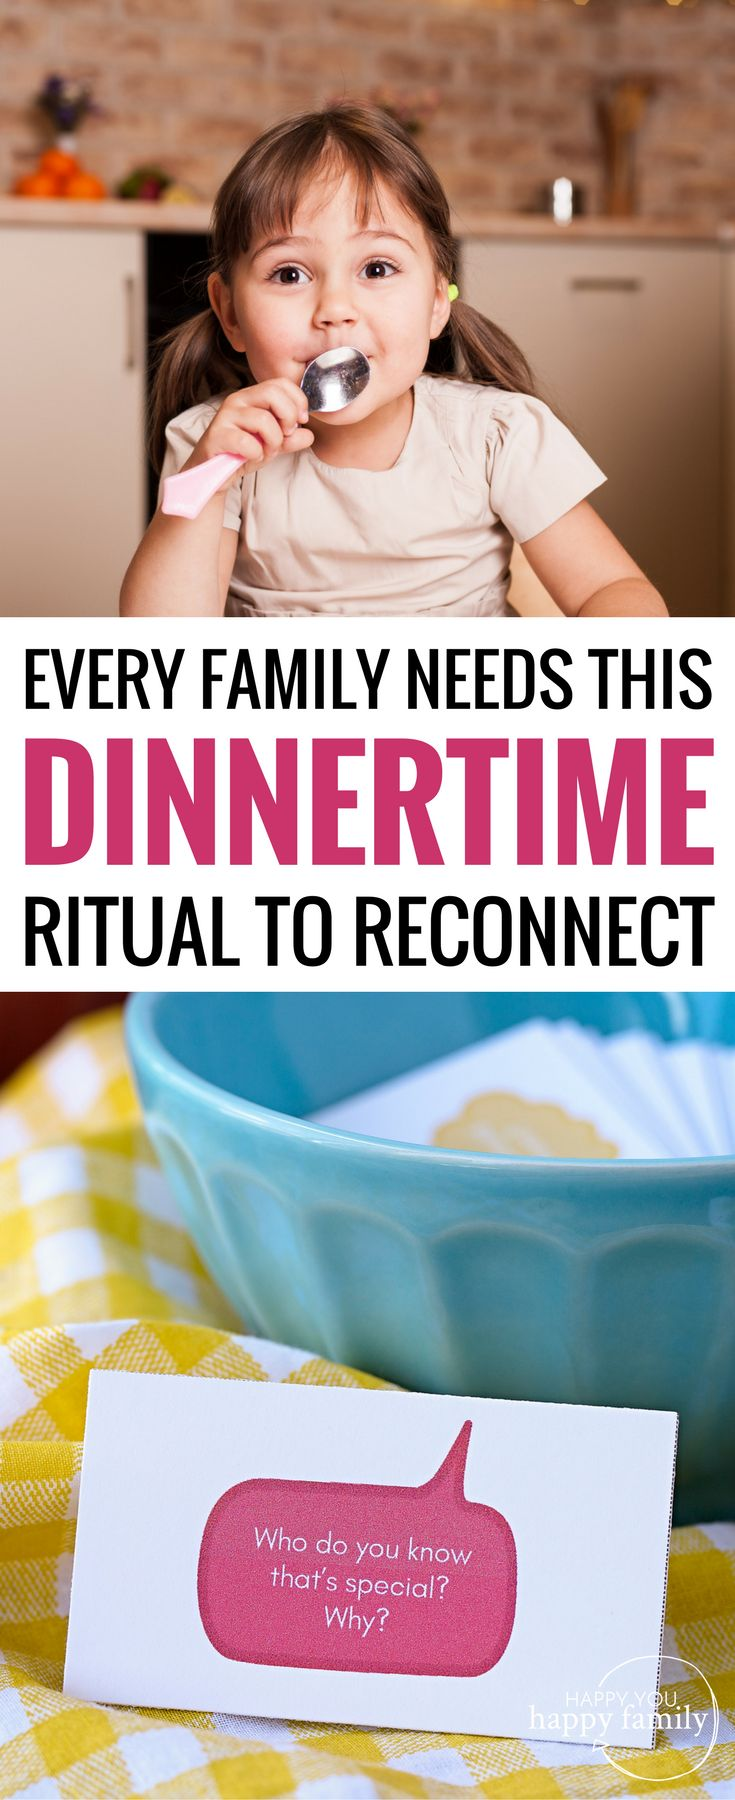 When it comes to familytime bonding activities, this one is a MUST. At the dinner table, take turns asking these conversation starters for kids, and you'll feel closer than ever! Every busy familytime needs this family tradition to reconnect after a hectic work and school schedule all day. These printable family conversation starters are GUARANTEED to give you more than one-word answers from your kids -- the key to unlocking their heart! #familytime #familyfun #dinnertime #kidsactivities